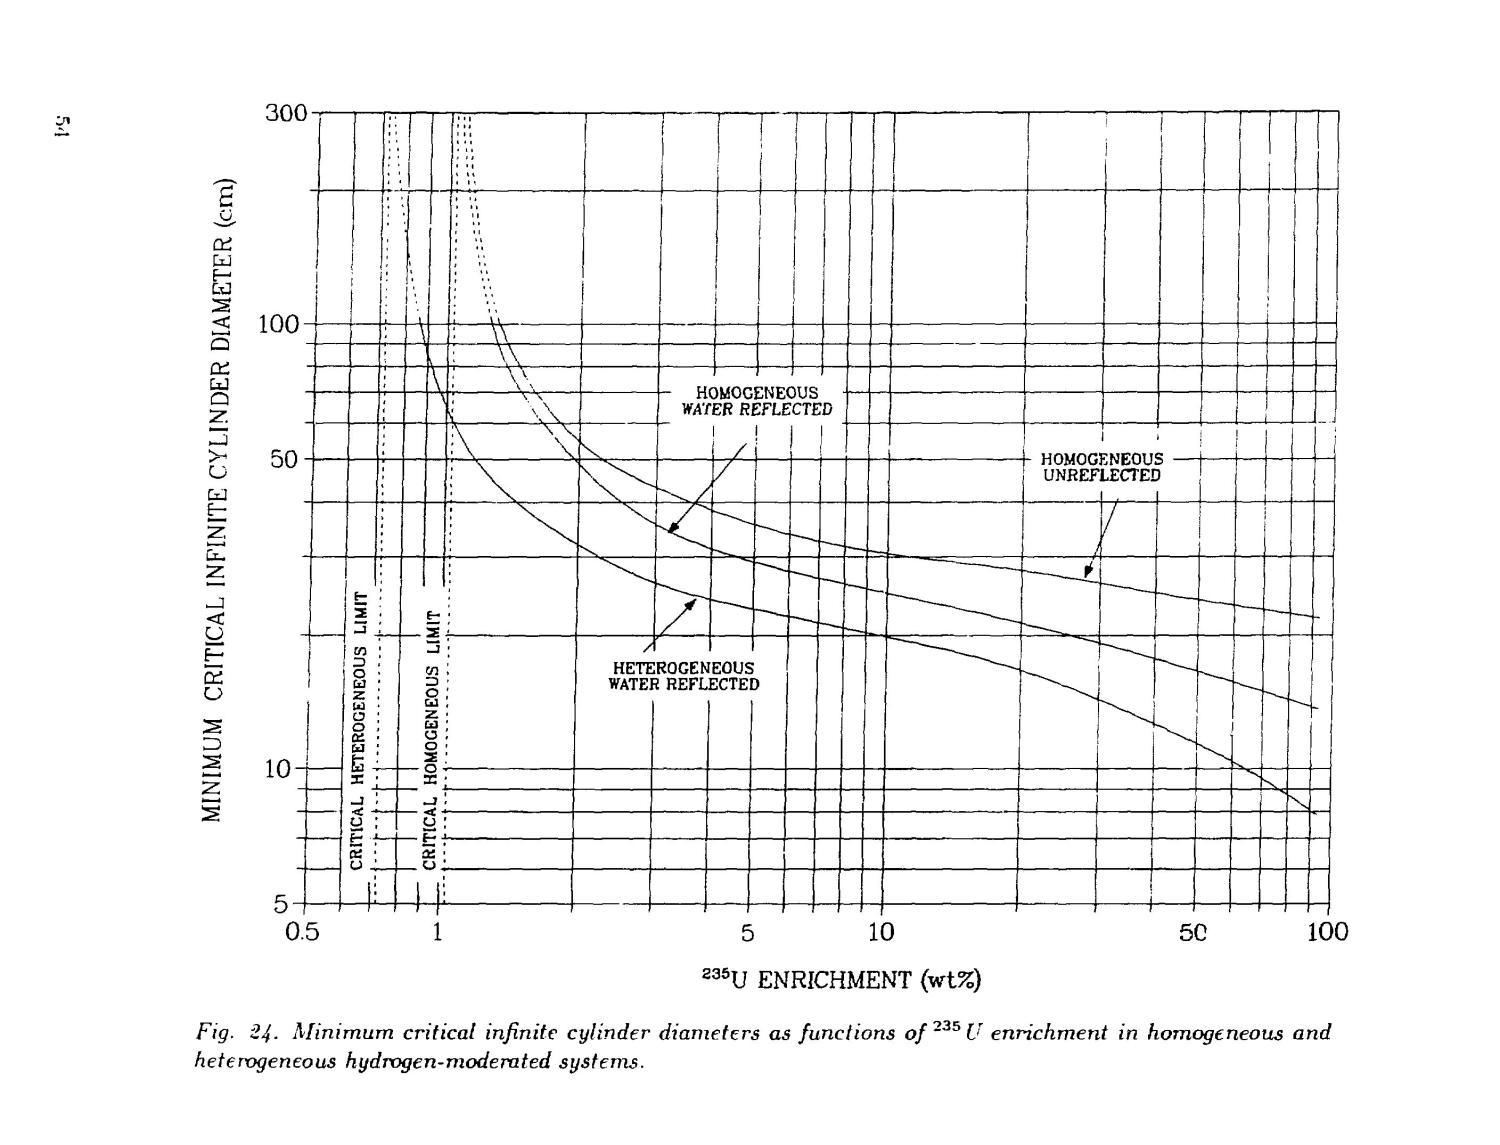 Critical dimensions of systems containing /sup 235/U, /sup 239/Pu, and /sup 233/U: 1986 Revision                                                                                                      [Sequence #]: 58 of 205